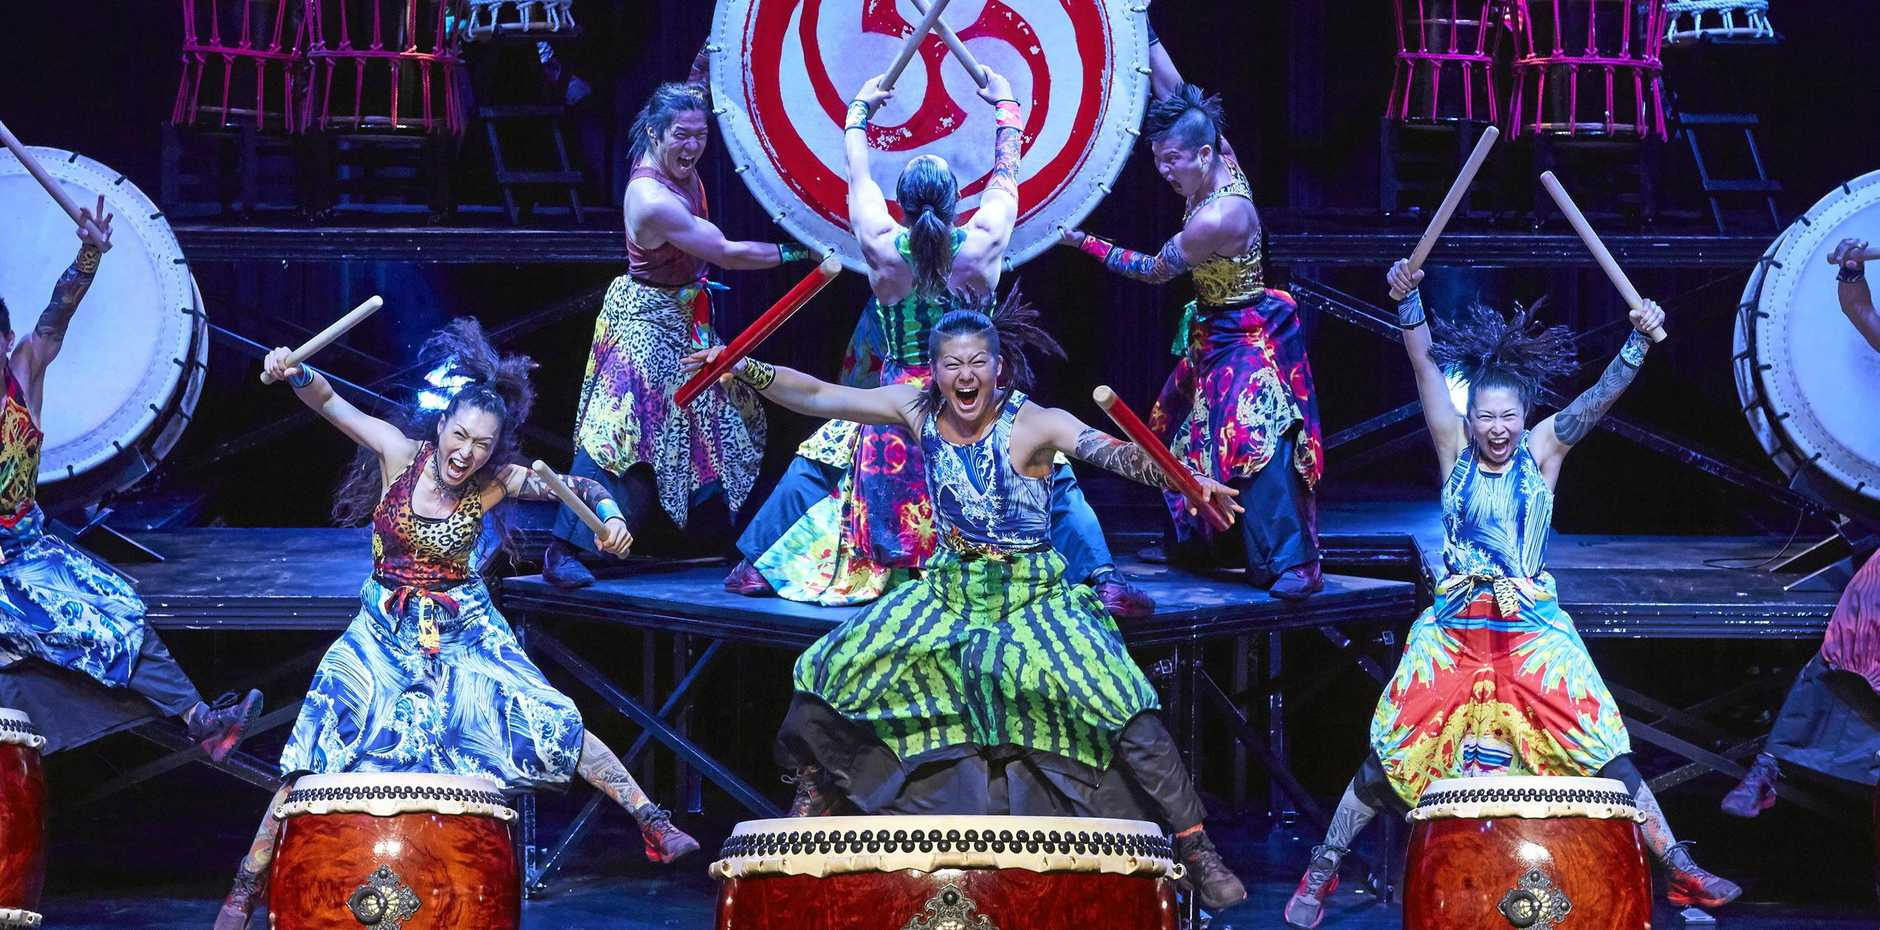 Japanese taiko drumming troupe Yamato brings Passion to the MECC stage on August 1.